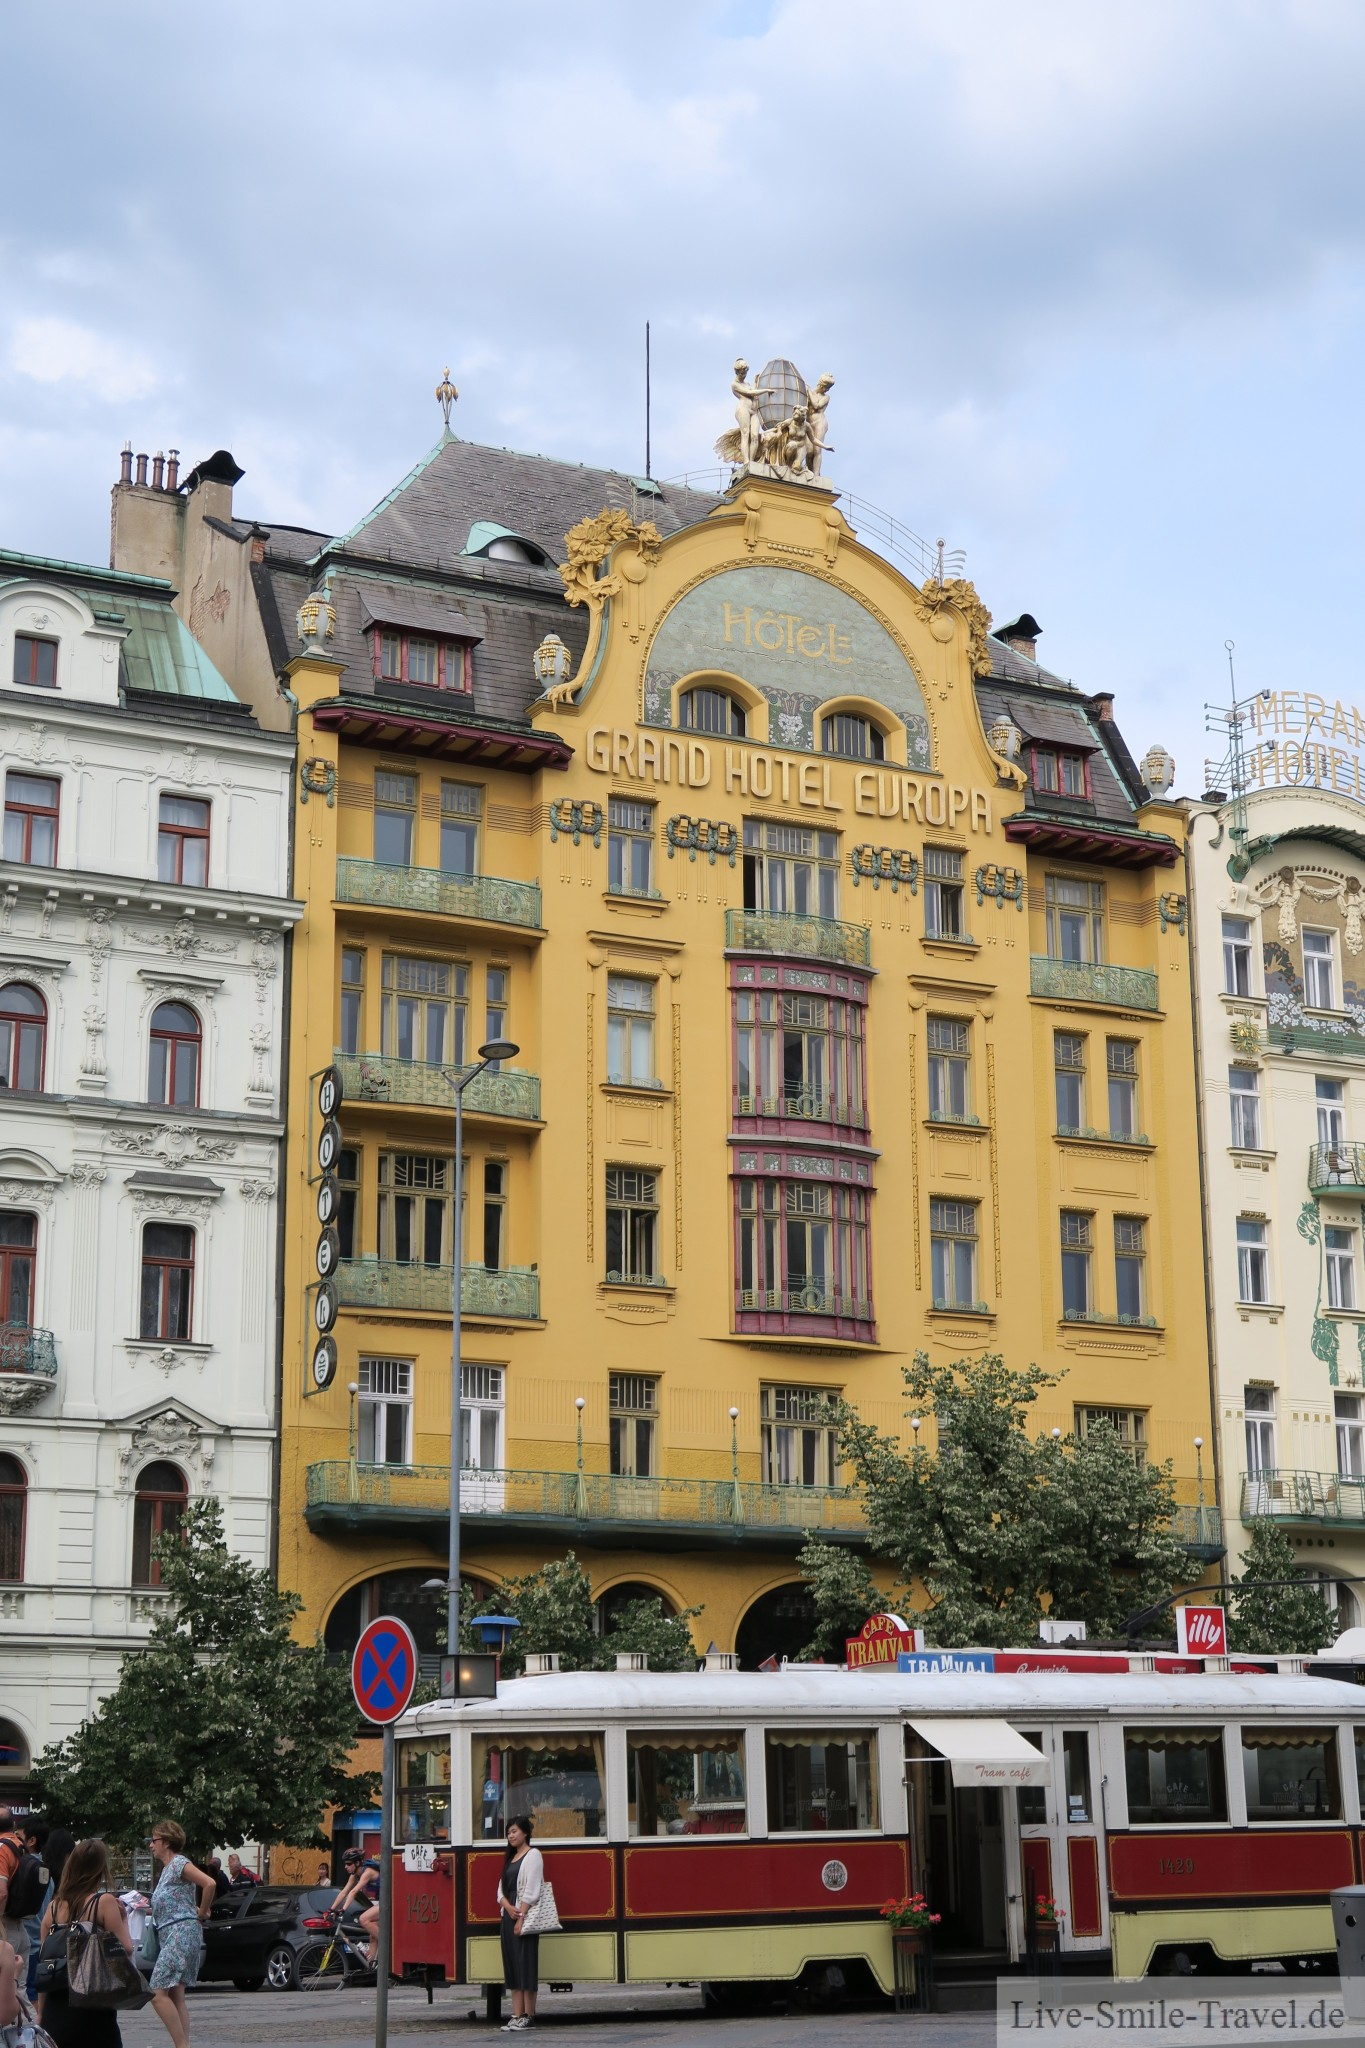 Grand hotel europa info prague forum tripadvisor for Hotel europa prague